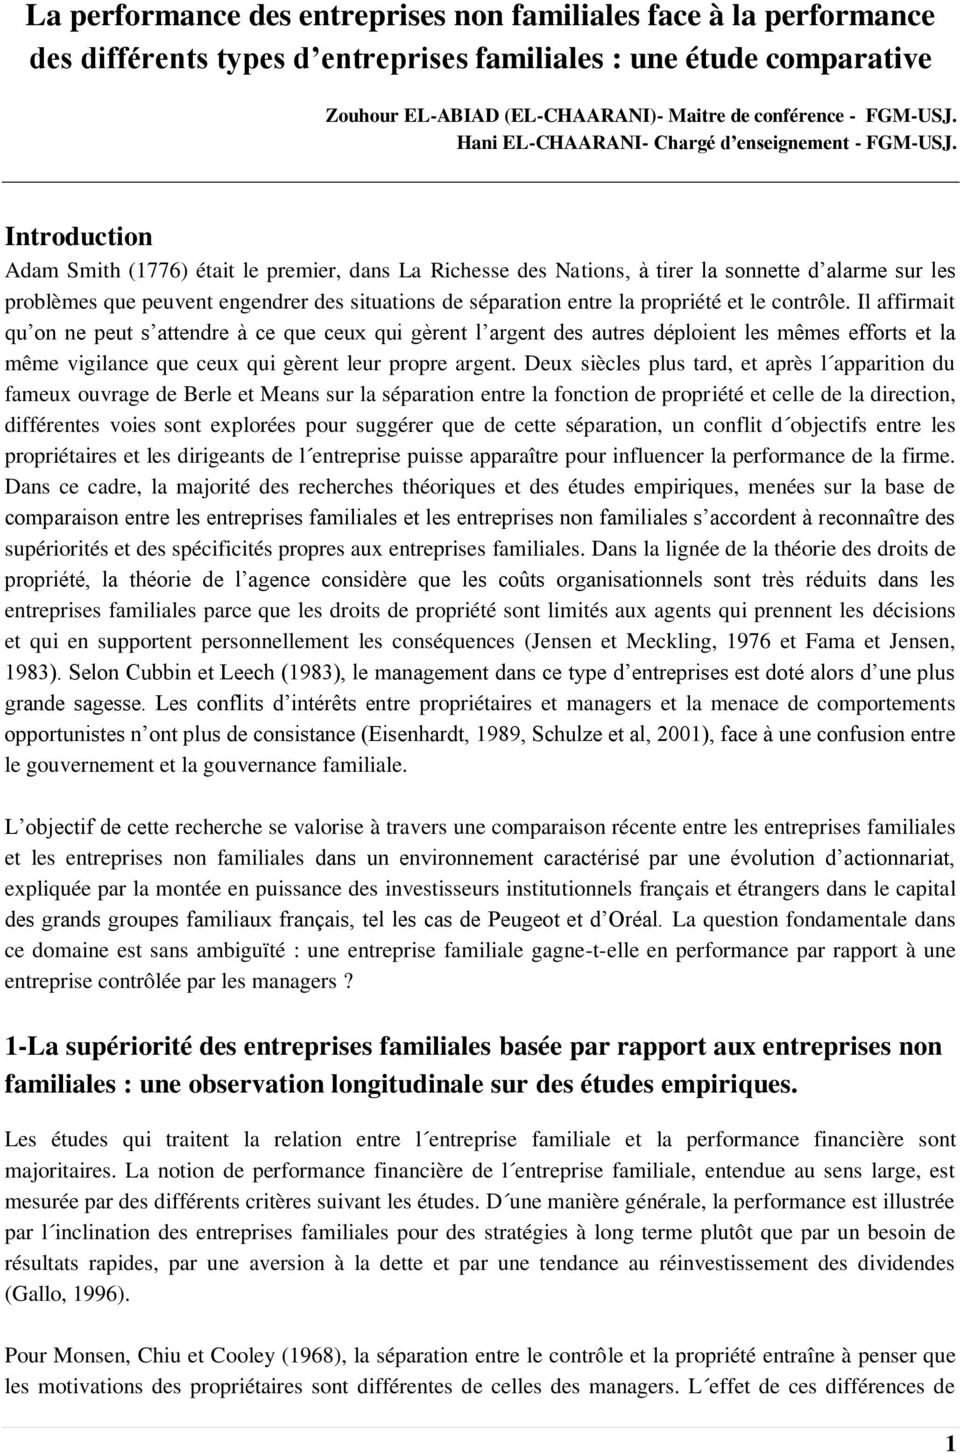 Introduction Adam Smith (1776) était le premier, dans La Richesse des Nations, à tirer la sonnette d alarme sur les problèmes que peuvent engendrer des situations de séparation entre la propriété et